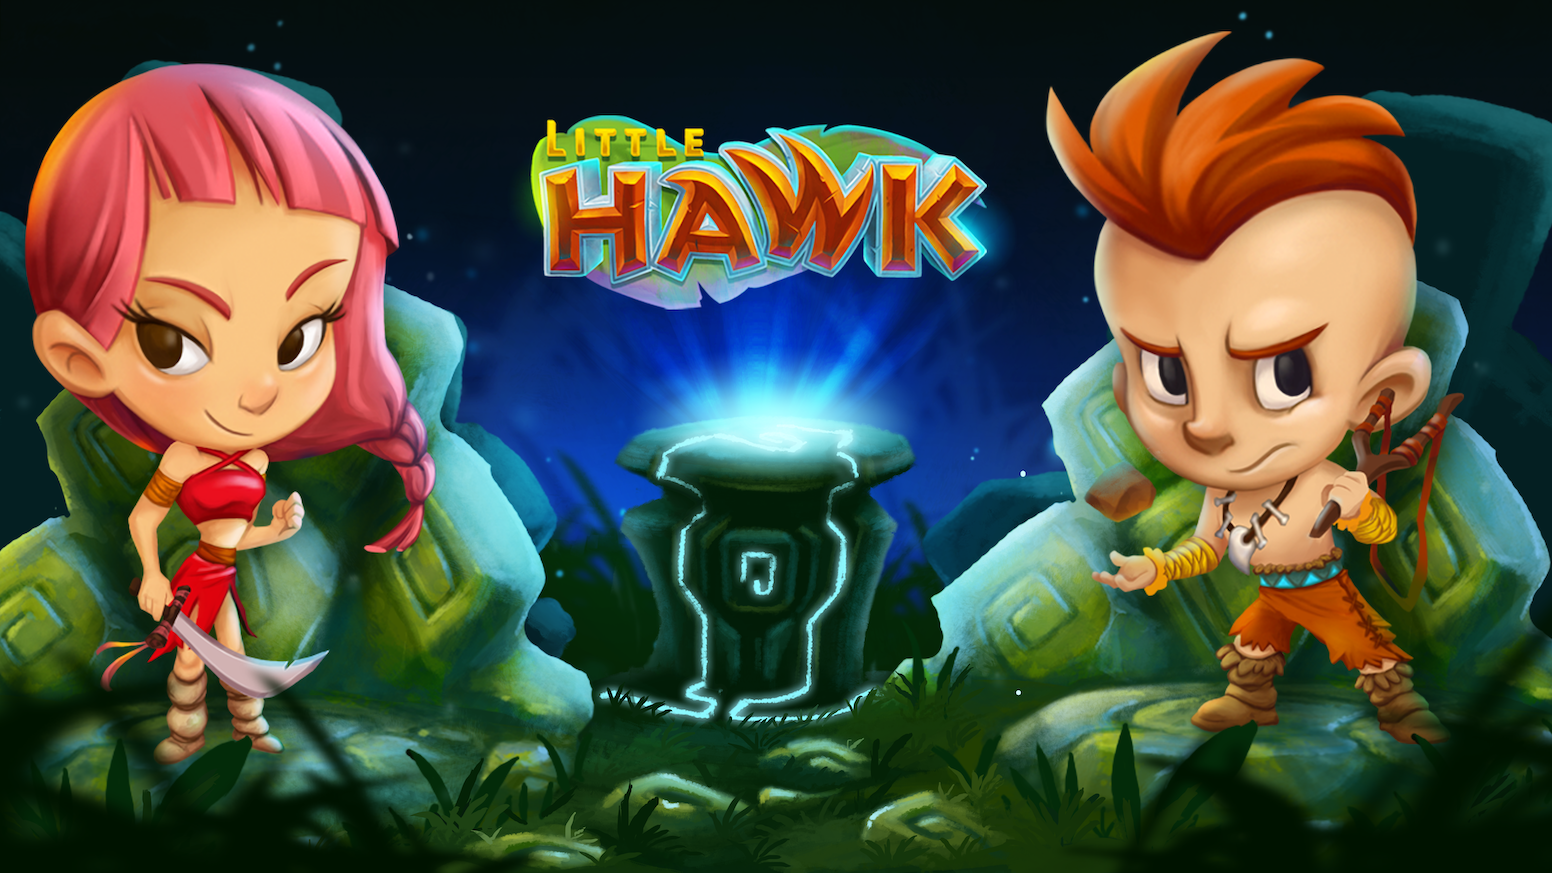 Little Hawk is an action-packed 2D platformer game with animal totems that help you defeat evil, rescue a princess, and save the world!